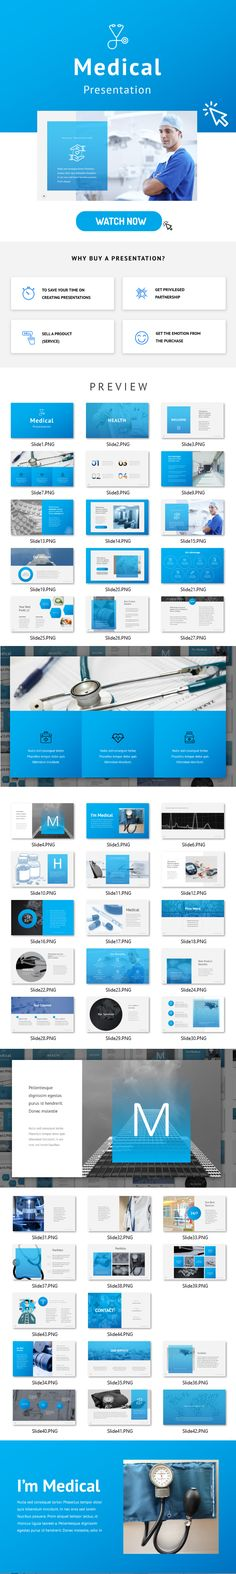 Medical  Google Slides — Google Slides PPTX #company #blue • Download ➝ https://graphicriver.net/item/medical-google-slides/19917009?ref=pxcr